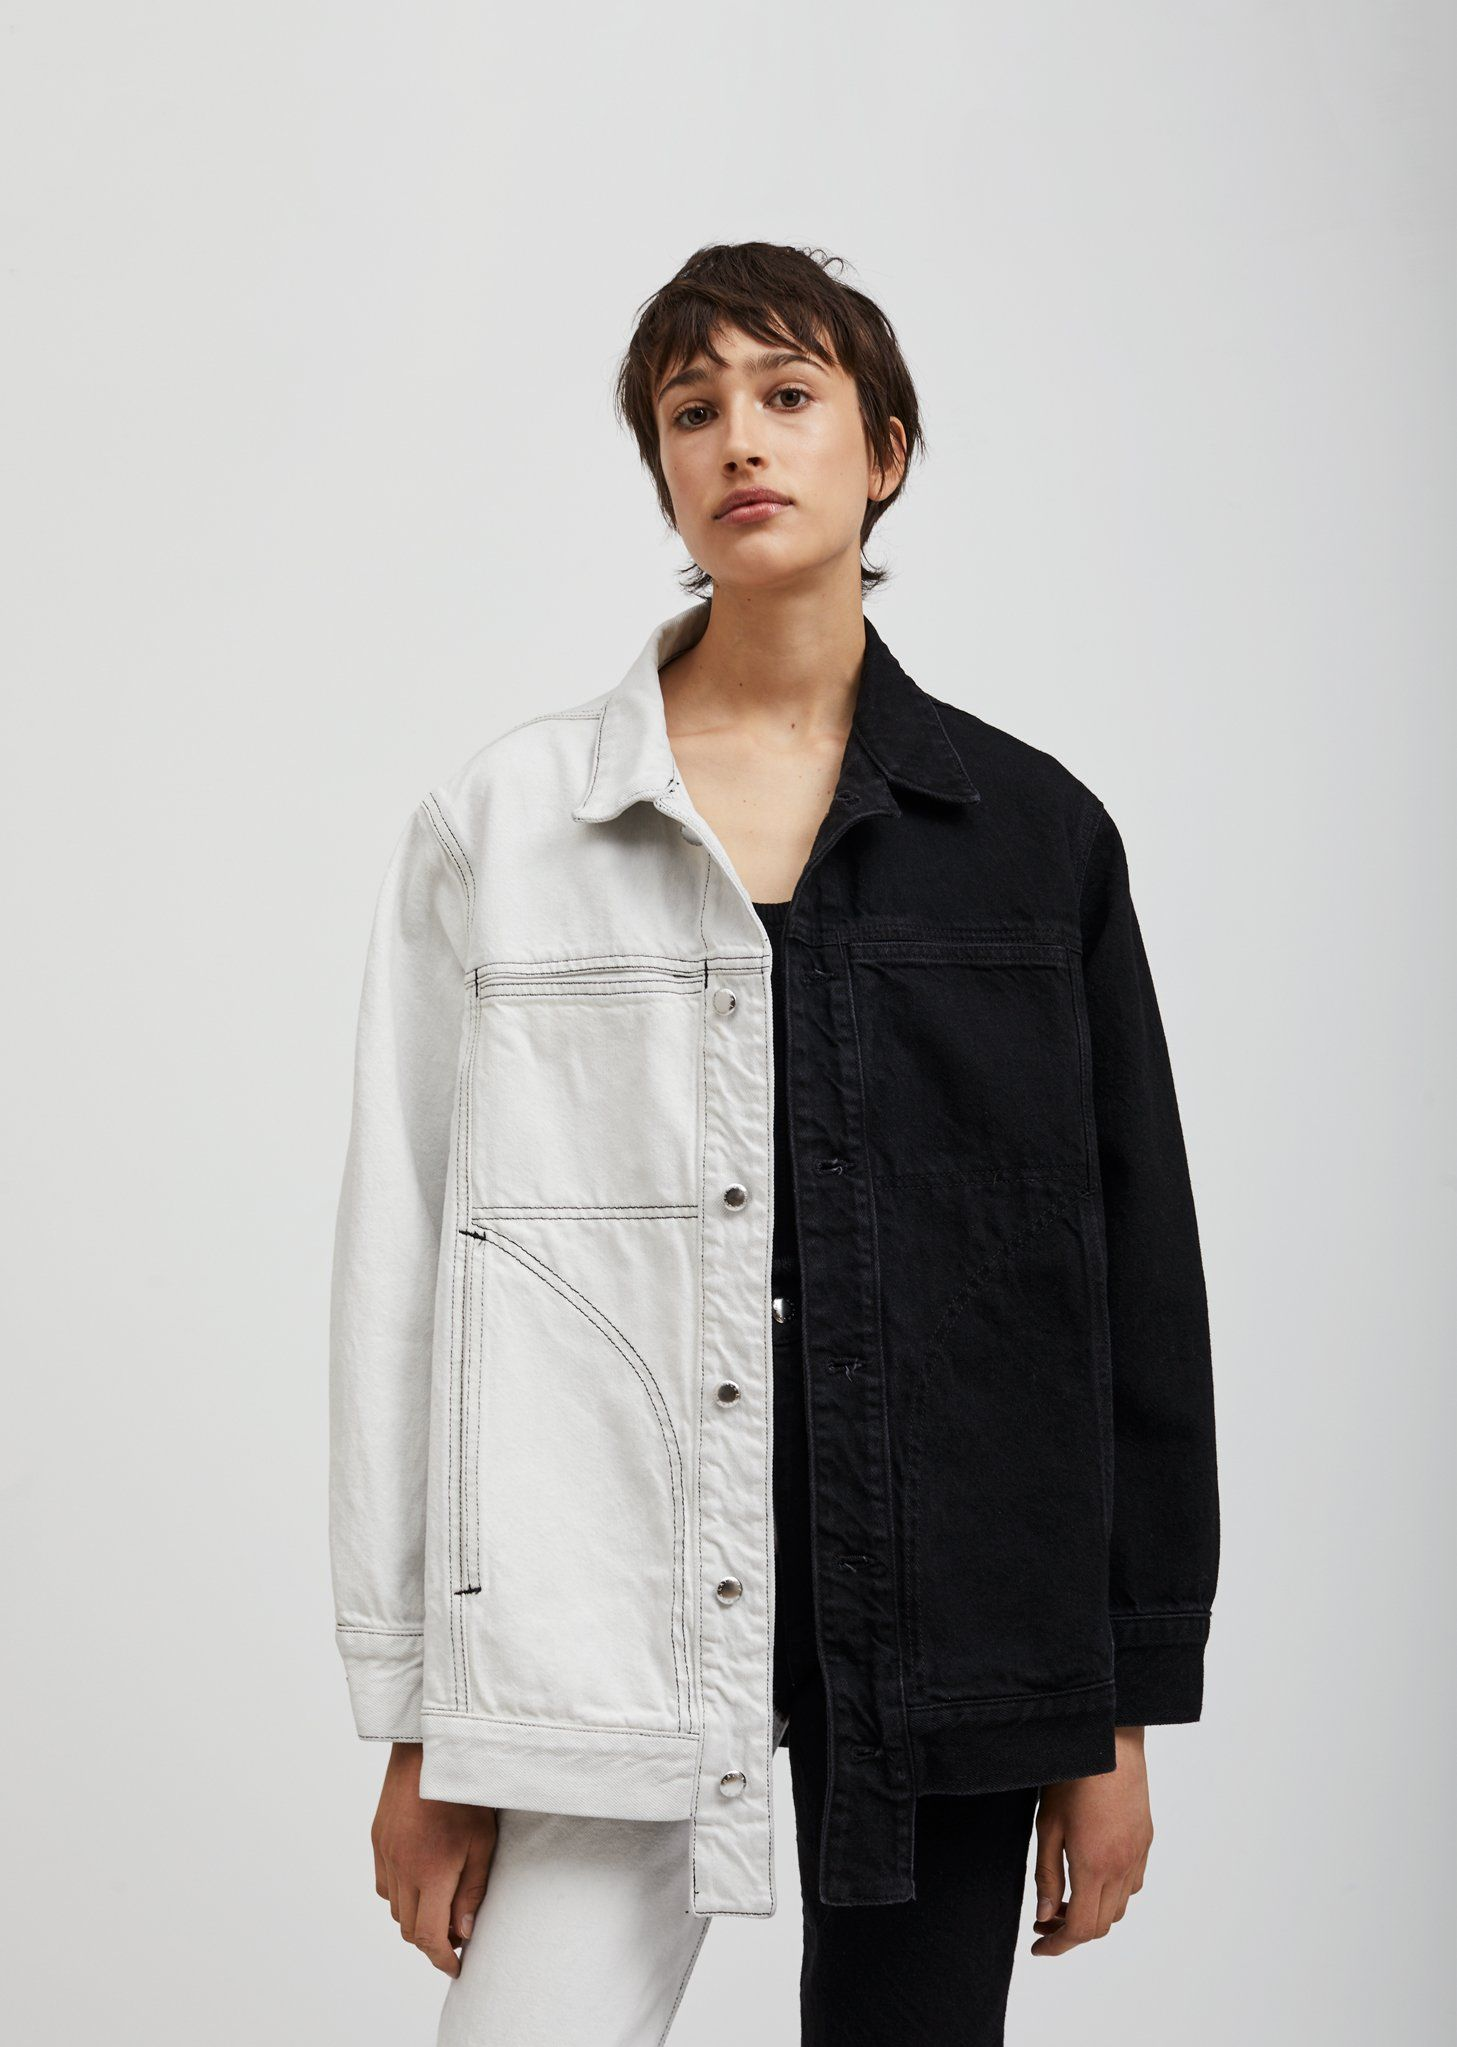 5b2ad5a4e9 Two Tone Denim Jacket - X-Small   Black and White